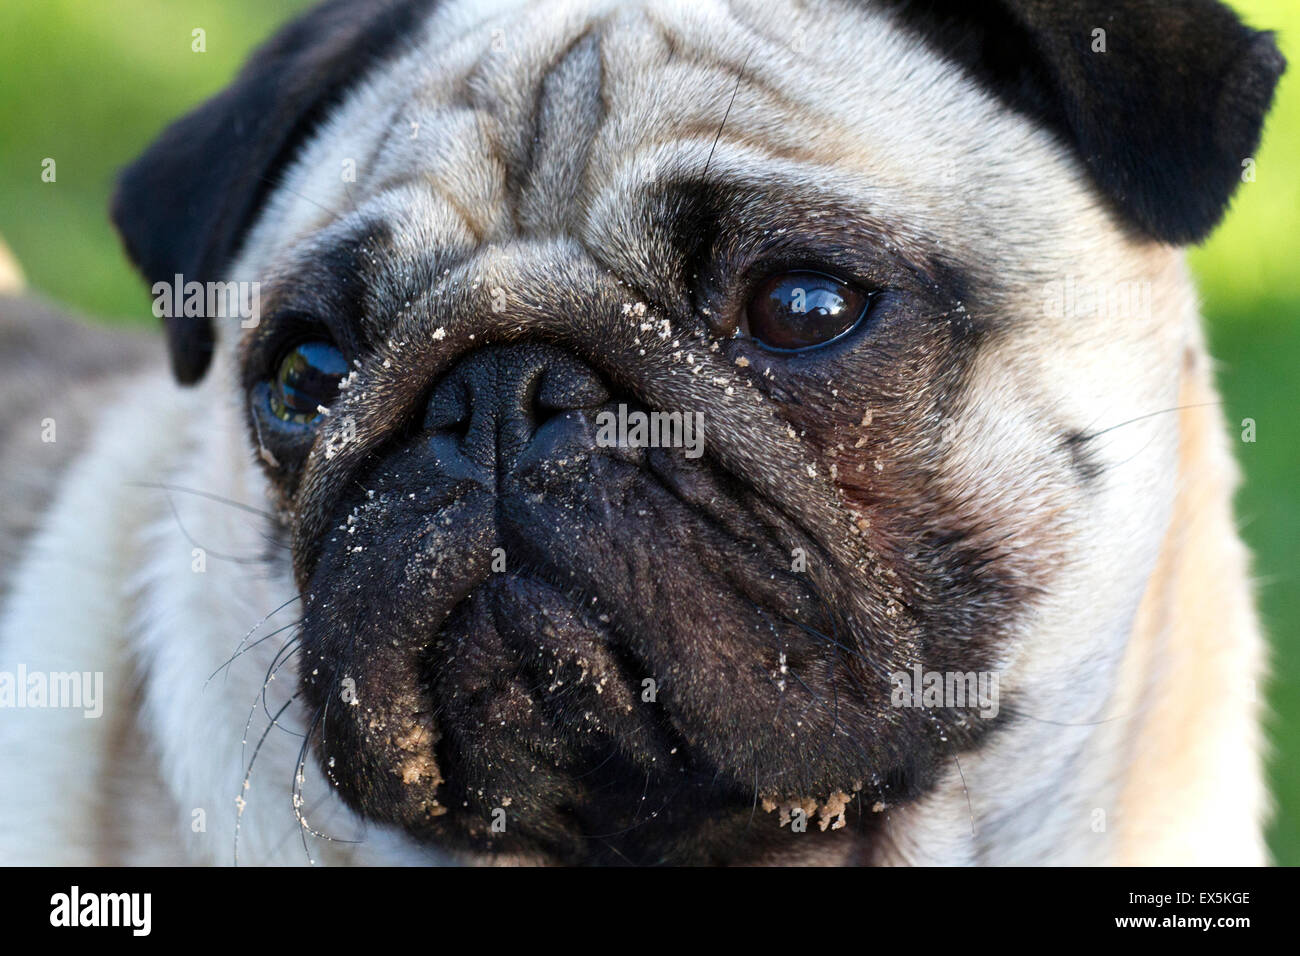 Pug dog harnessed whilst walking, Southport, Merseyside, UK - Stock Image